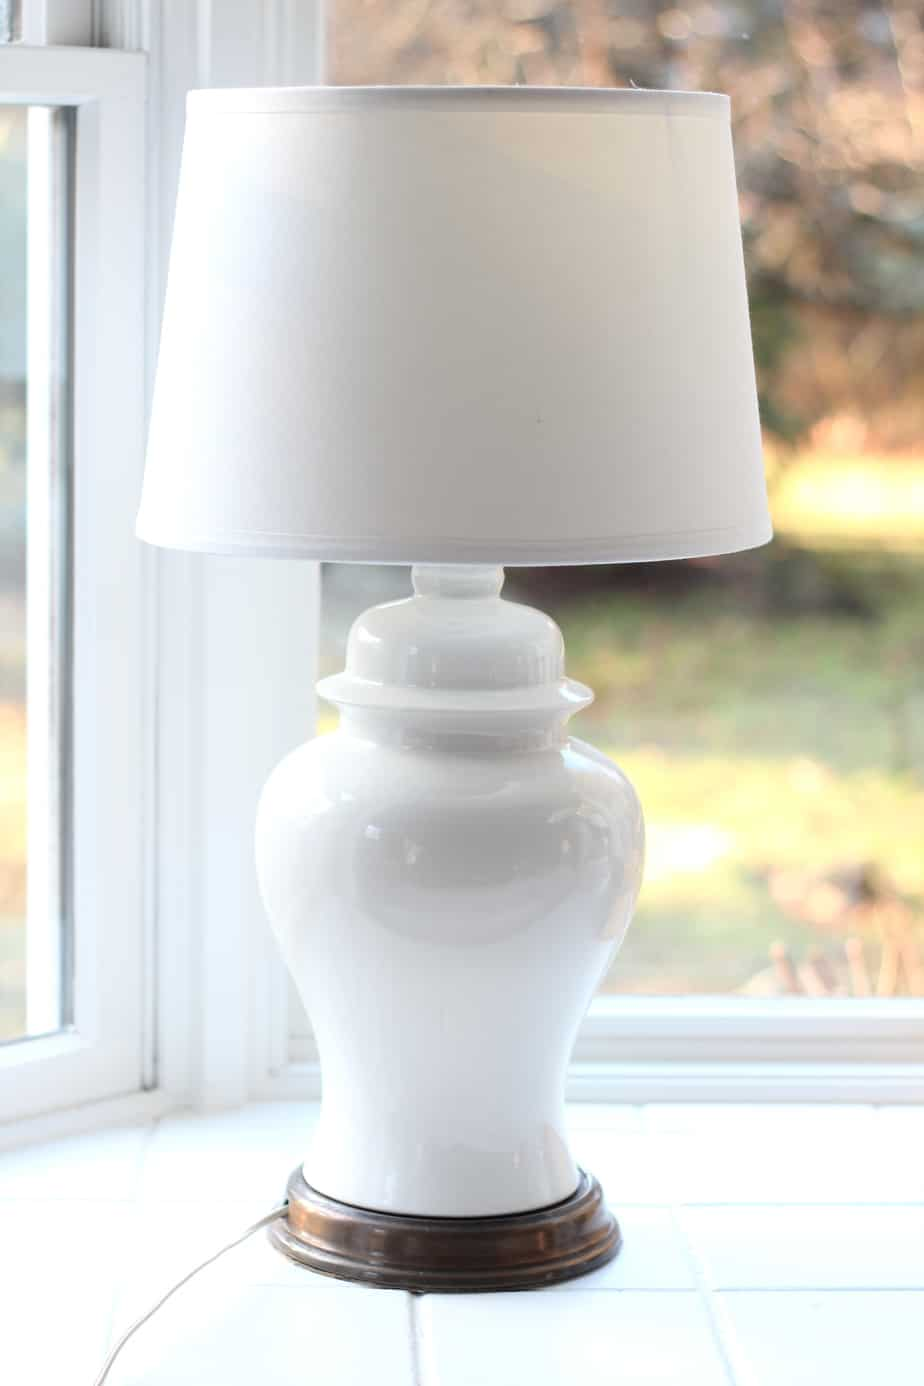 DIY lamp shade adaptor fixes a crooked shade.